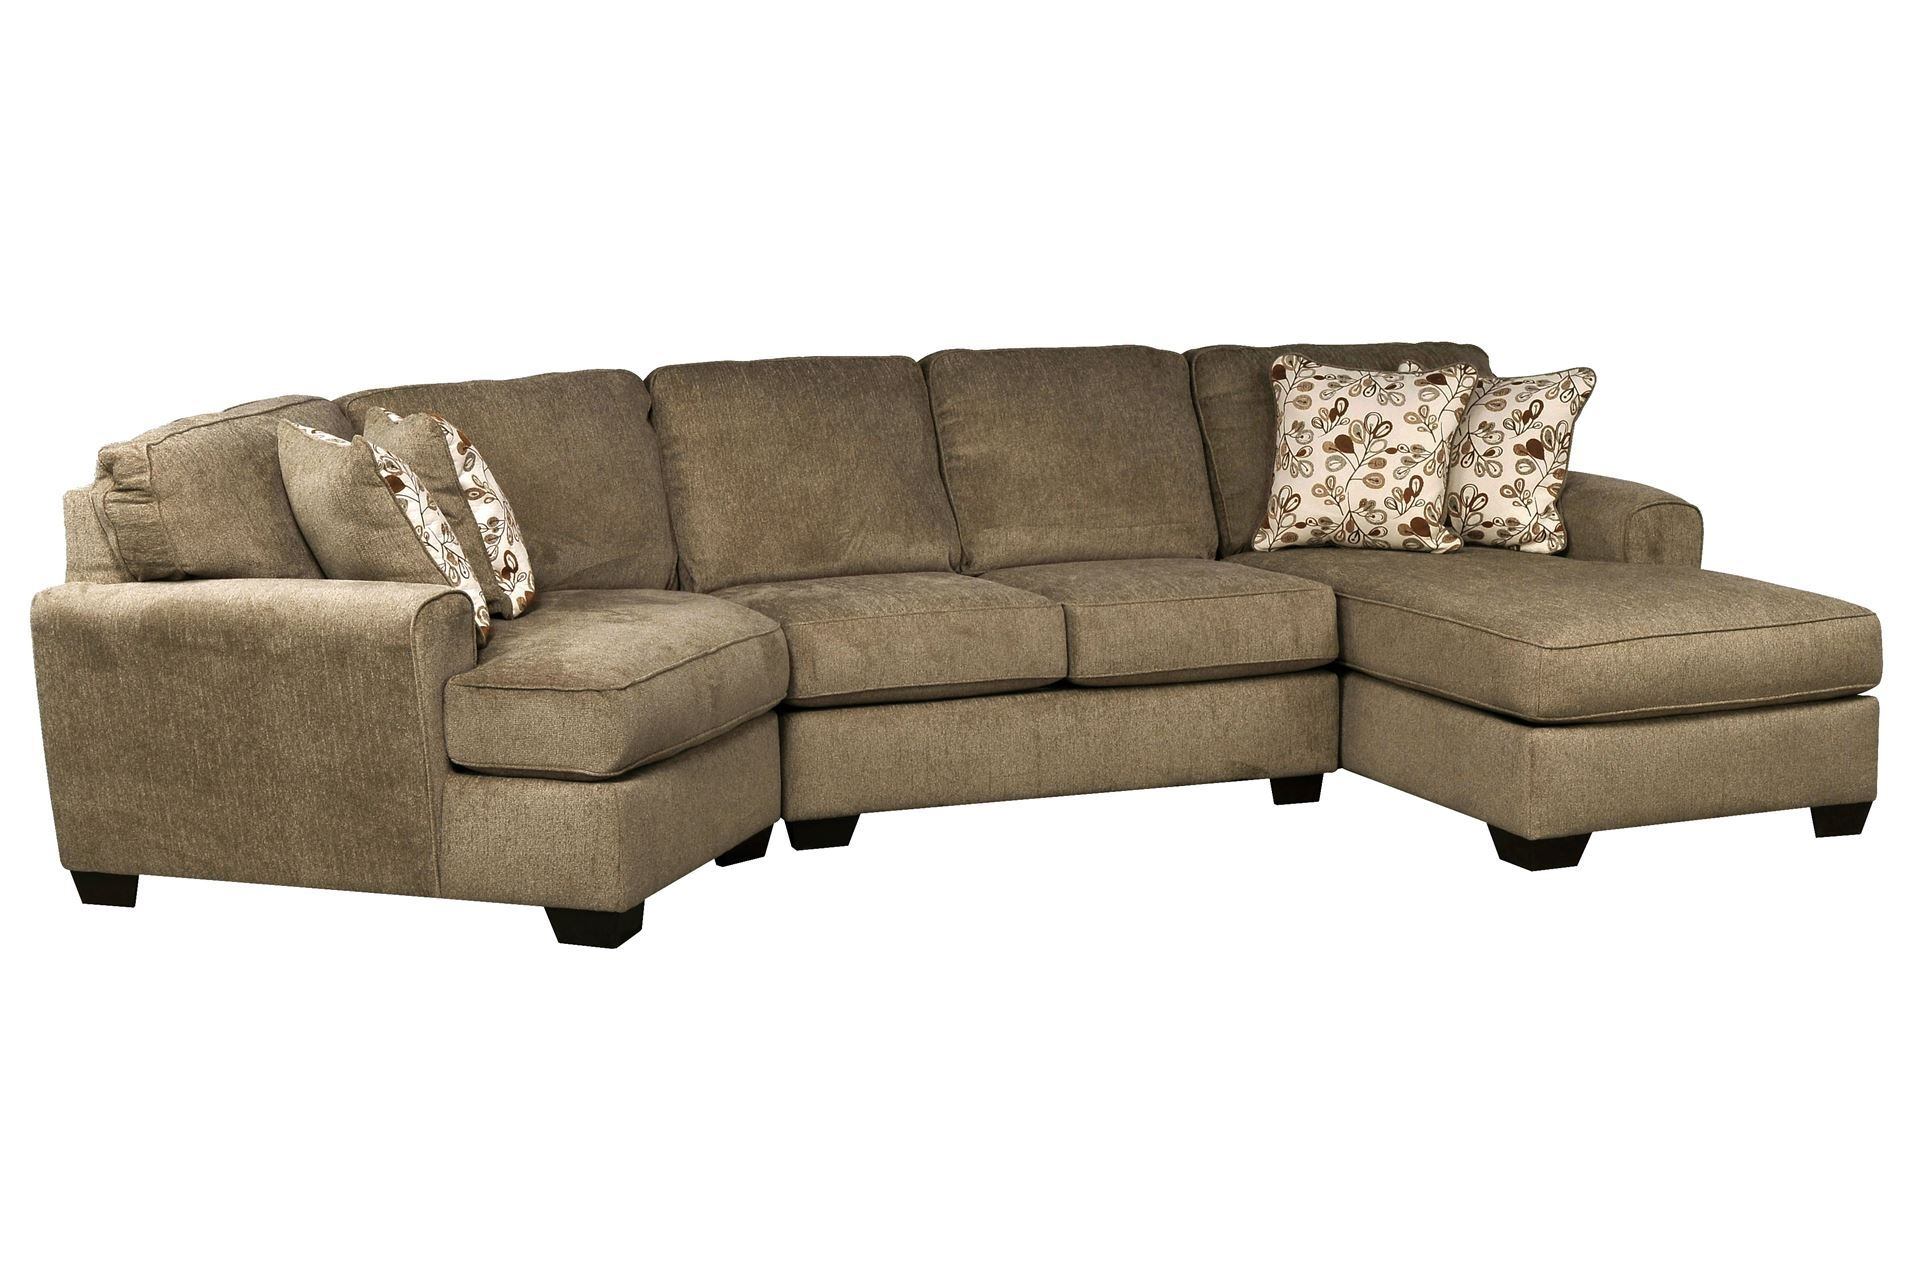 Don't Love The Color, But The Shape Is Great! | Patola Park 3 Piece In Angled Chaise Sofas (View 4 of 10)